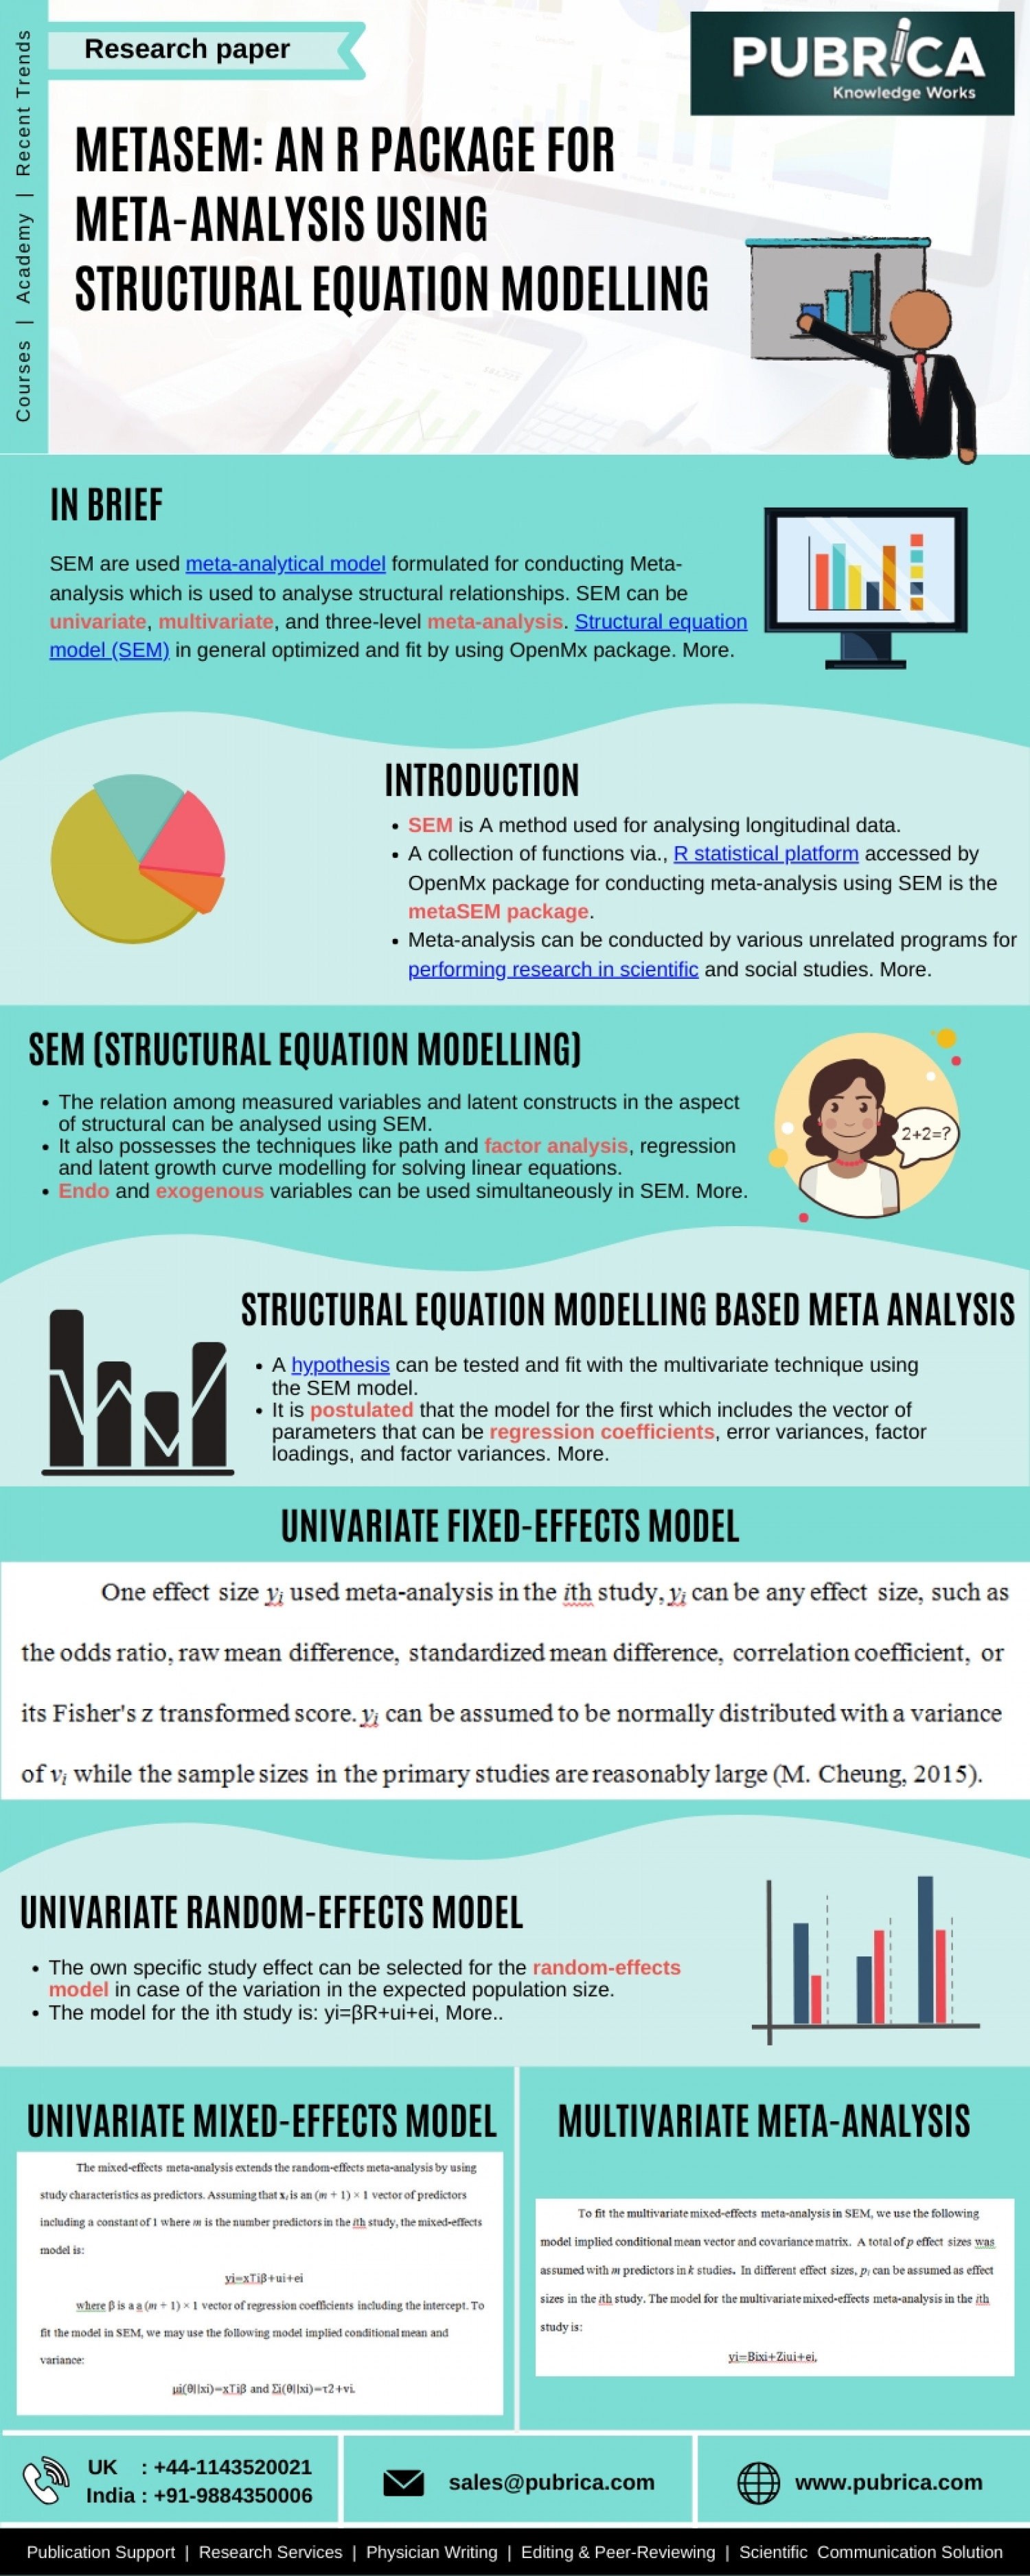 Metasem: Meta-Analysis R Package Using Structural Equation Modelling Infographic